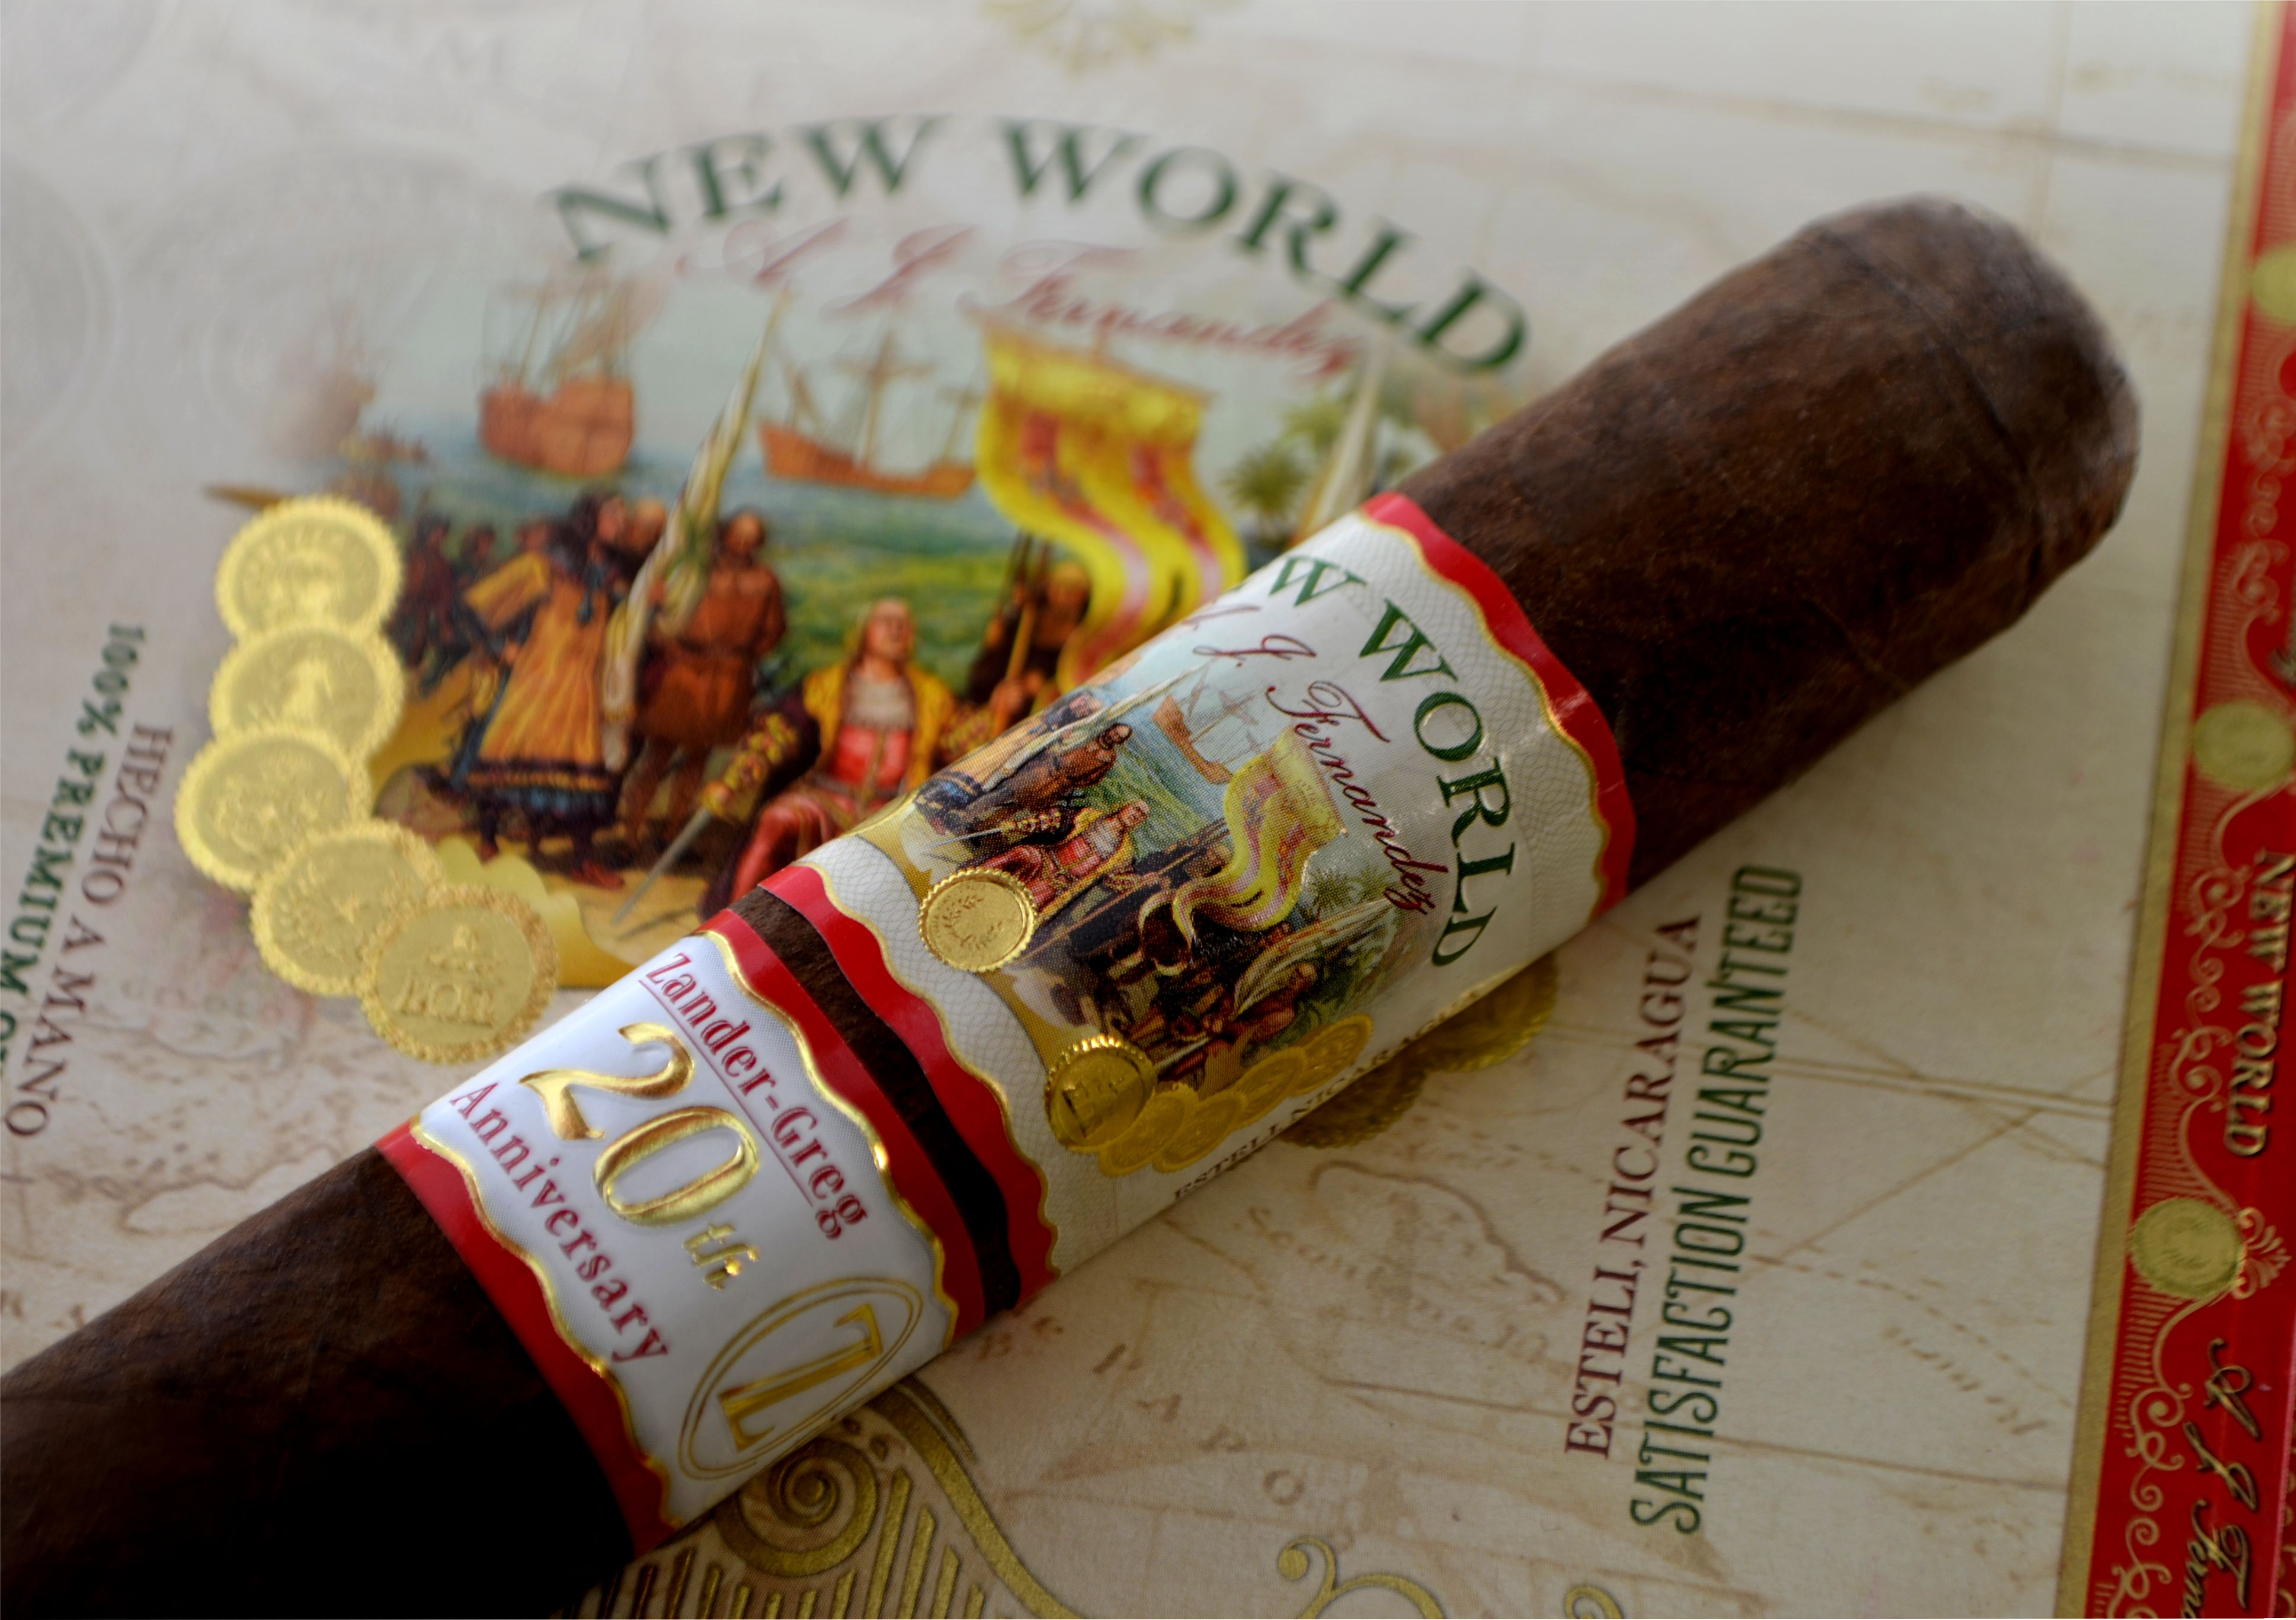 Cigar News: Zander-Greg 20th Anniversary to be Special Edition of A.J. Fernandez New World